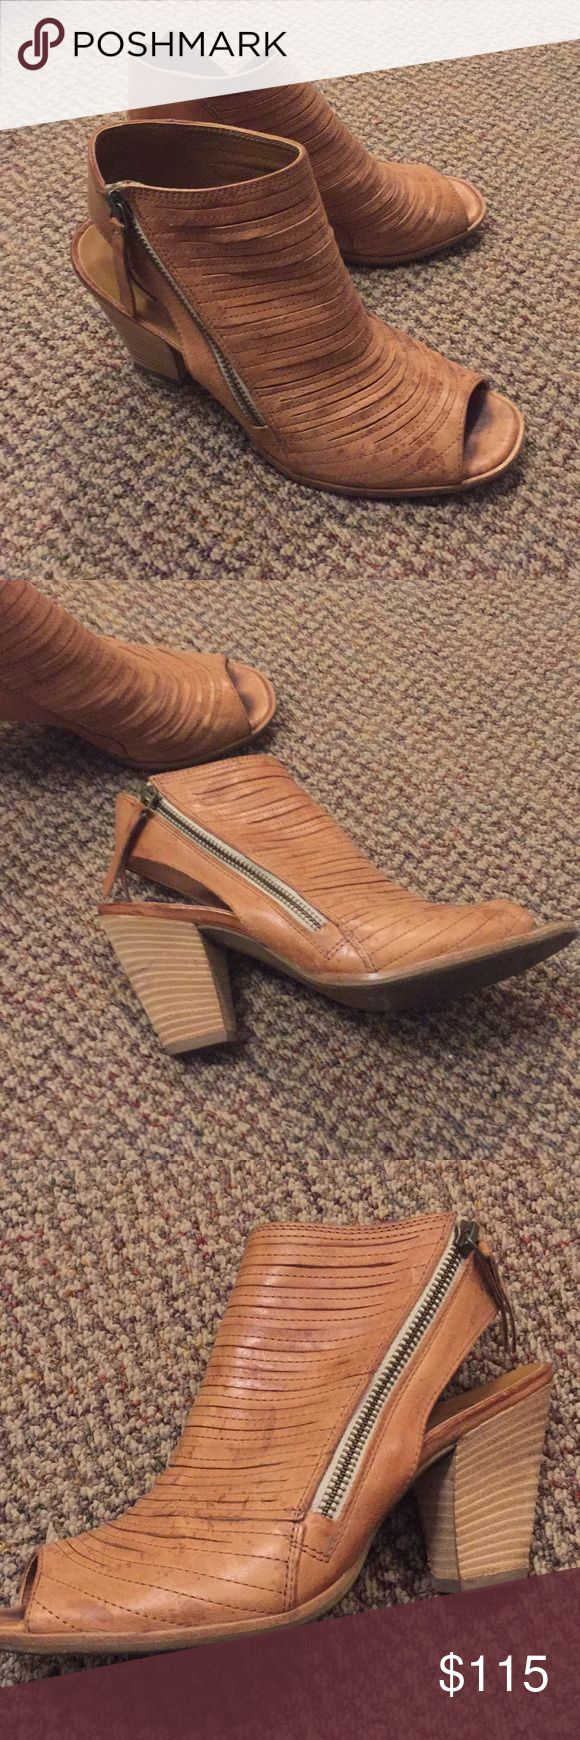 Paul green  'cayanne' leather peep toe sandal Wore a handful (probably 10-15 times in the summer).  Bought from Nordstrom's  Faint rain drop marks on the leather Paul Green Shoes Sandals